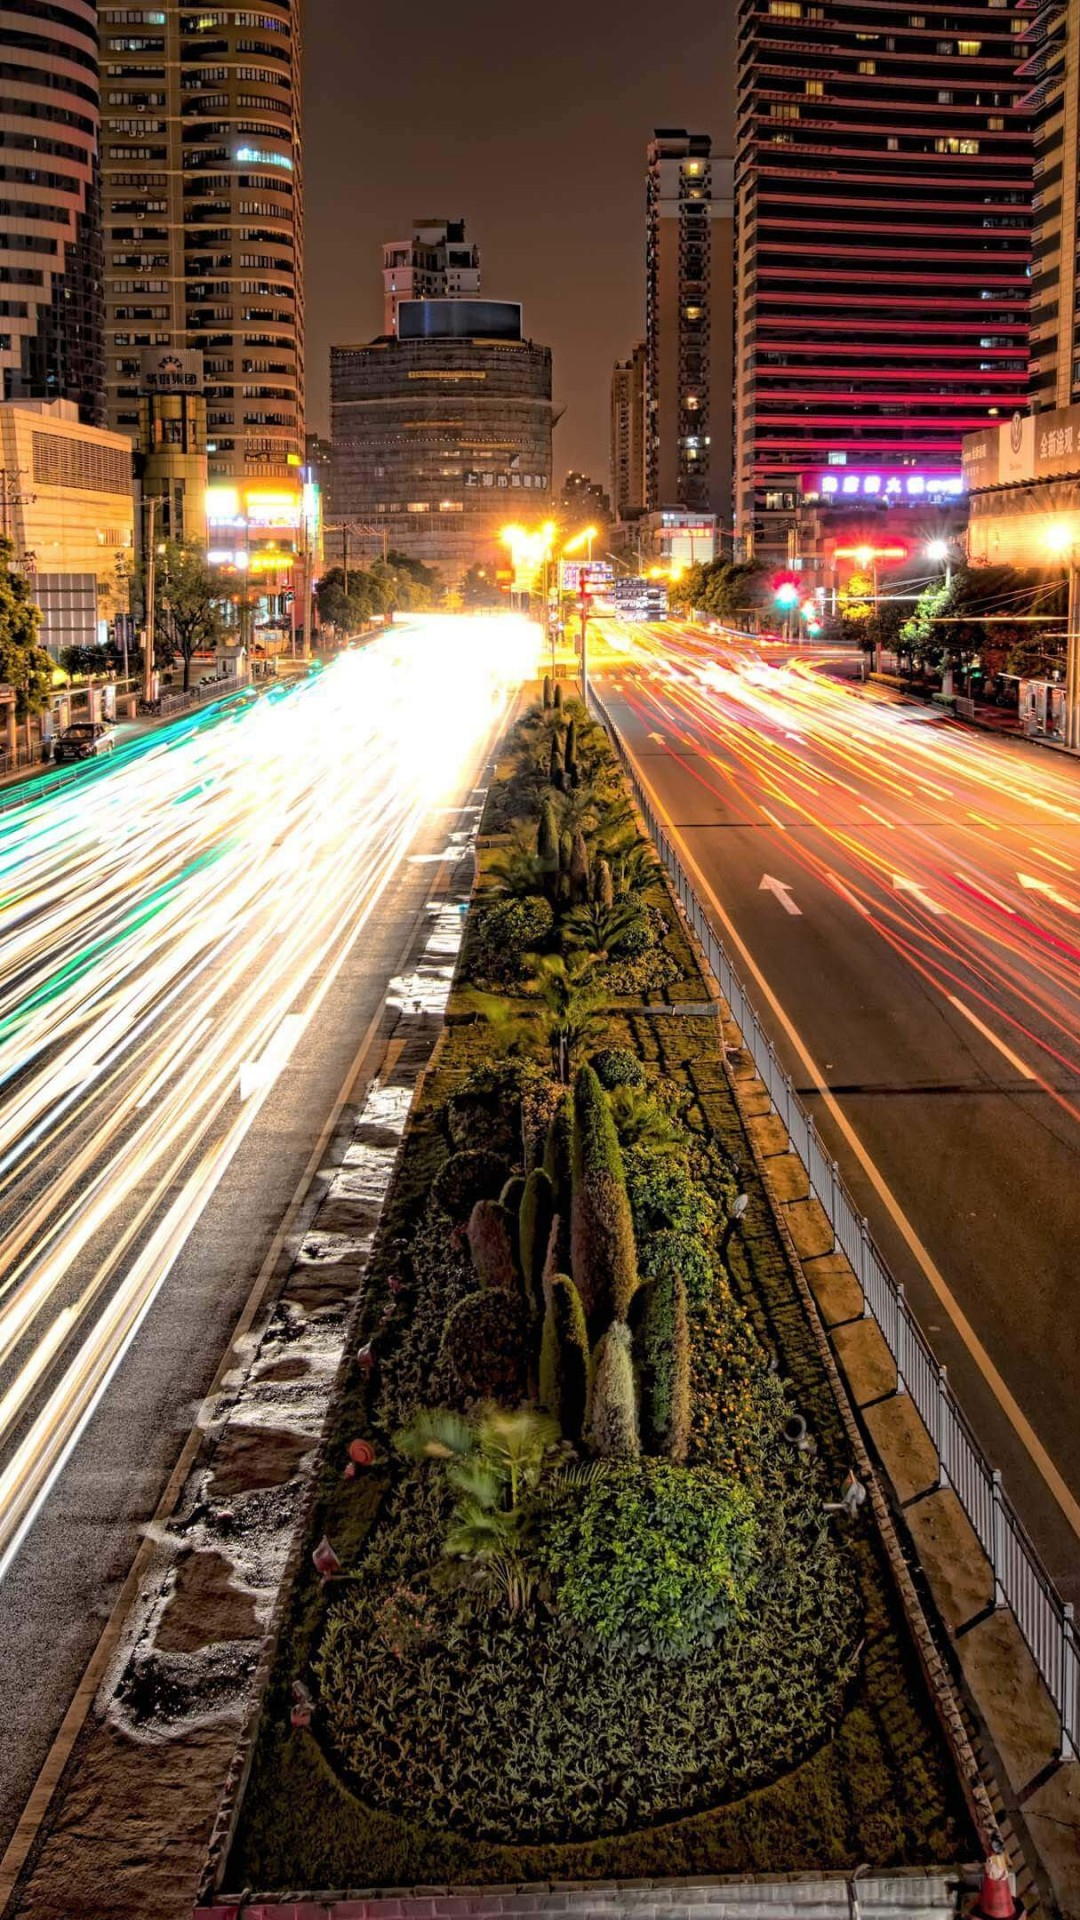 Busy Road in Shanghai at Night Wallpaper for SAMSUNG Galaxy S4